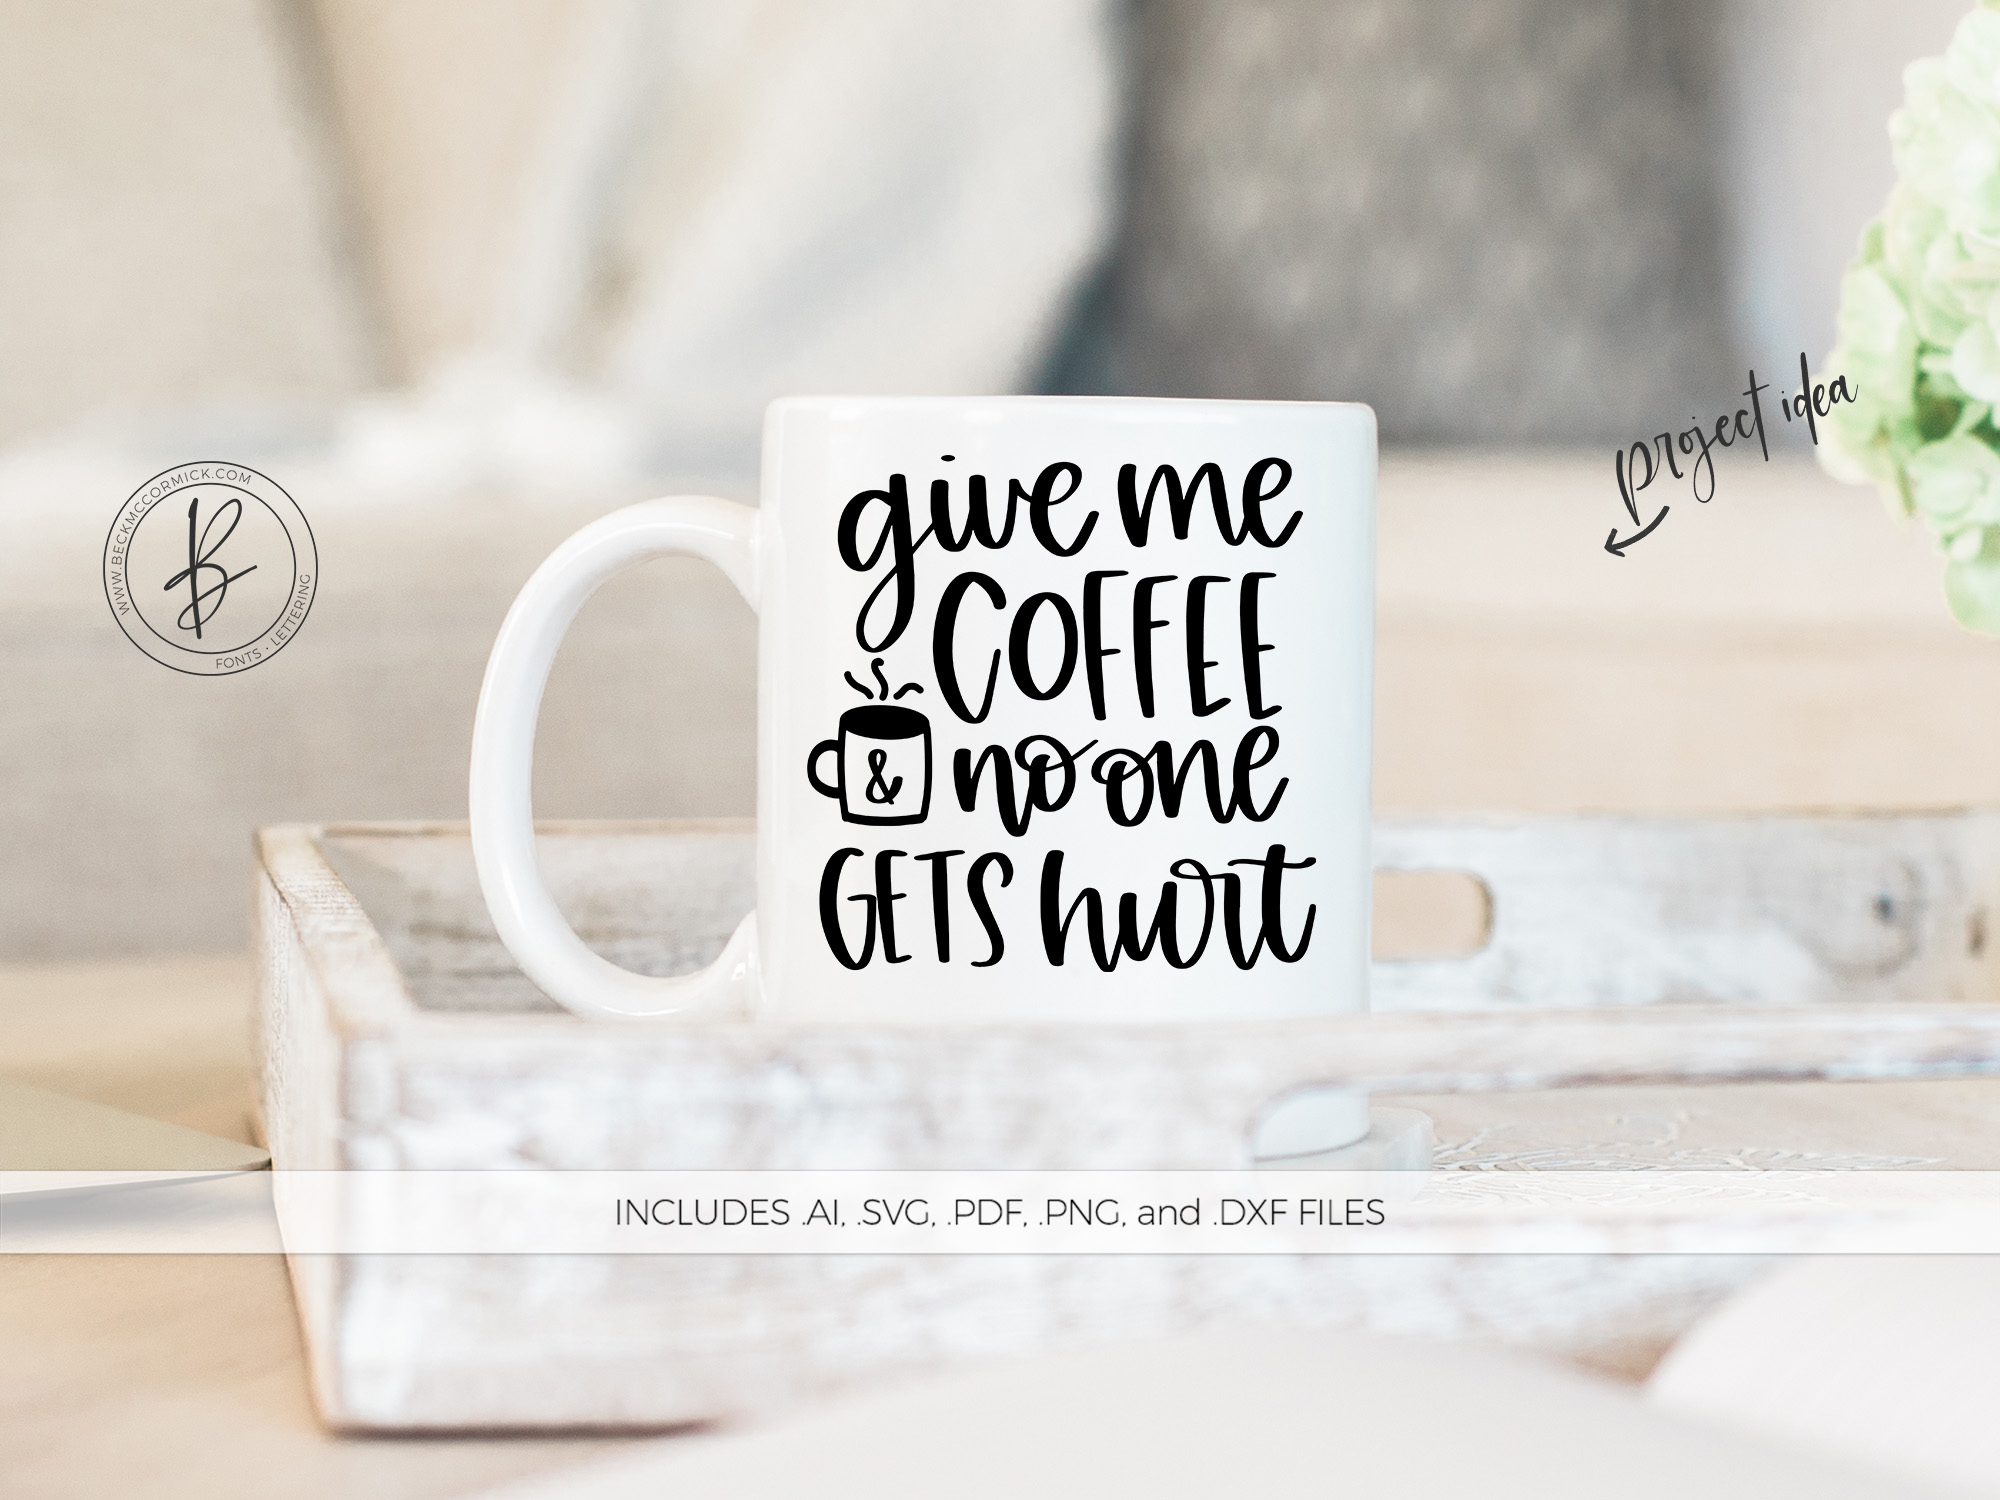 Download Free Give Me Coffee And No One Gets Hurt Graphic By Beckmccormick for Cricut Explore, Silhouette and other cutting machines.